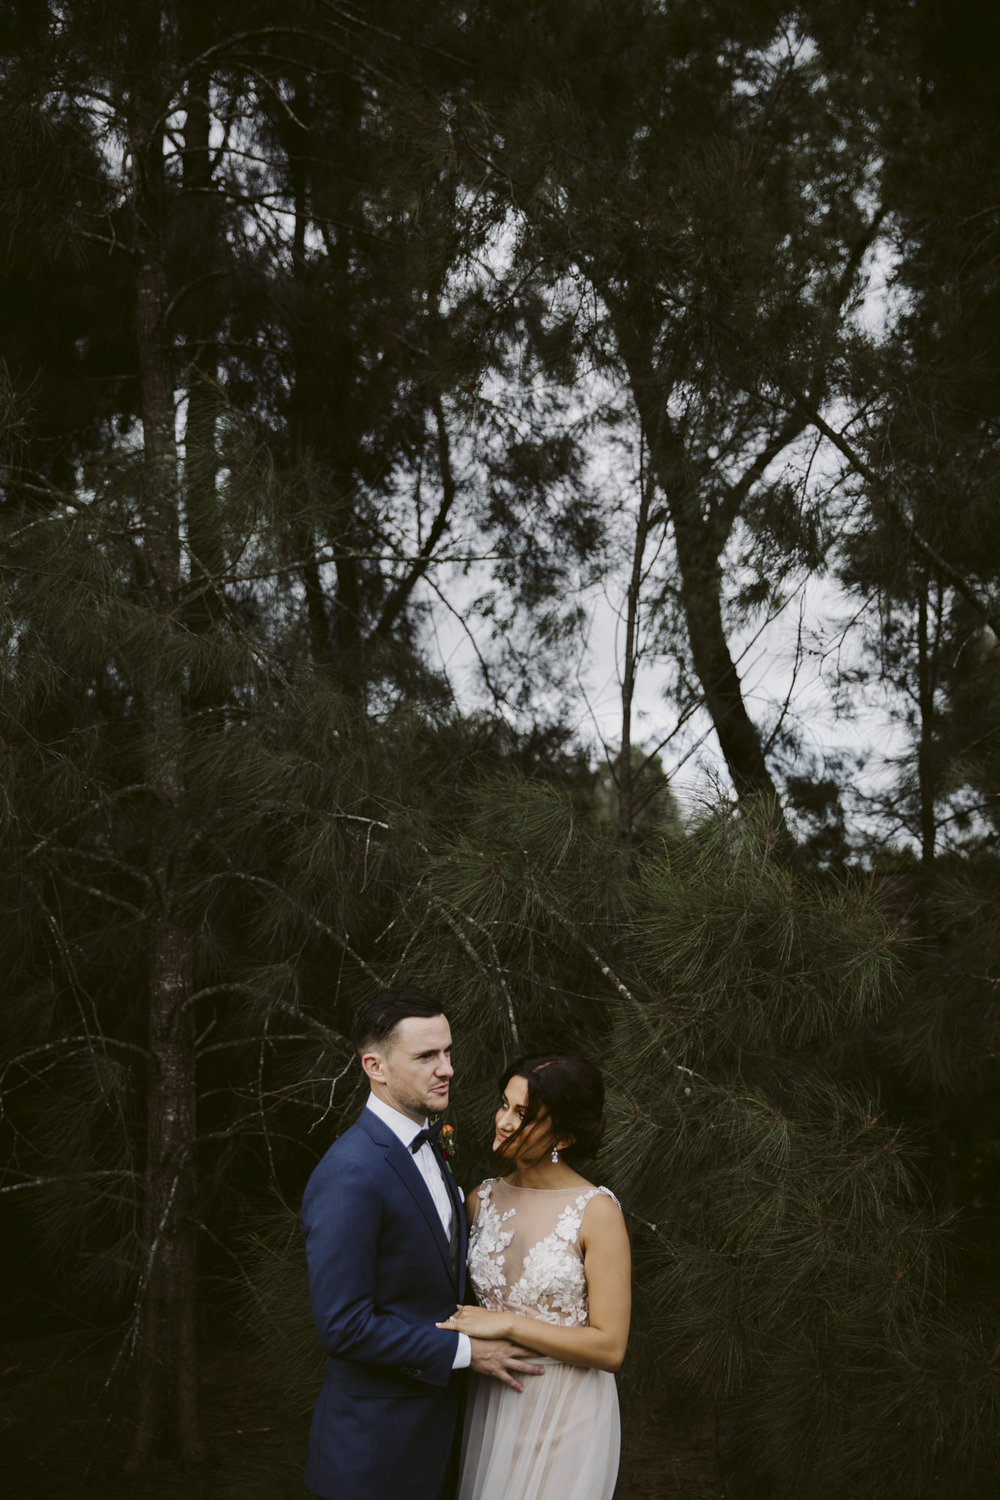 Anna Turner Sydney Wedding Photographer-98.jpg